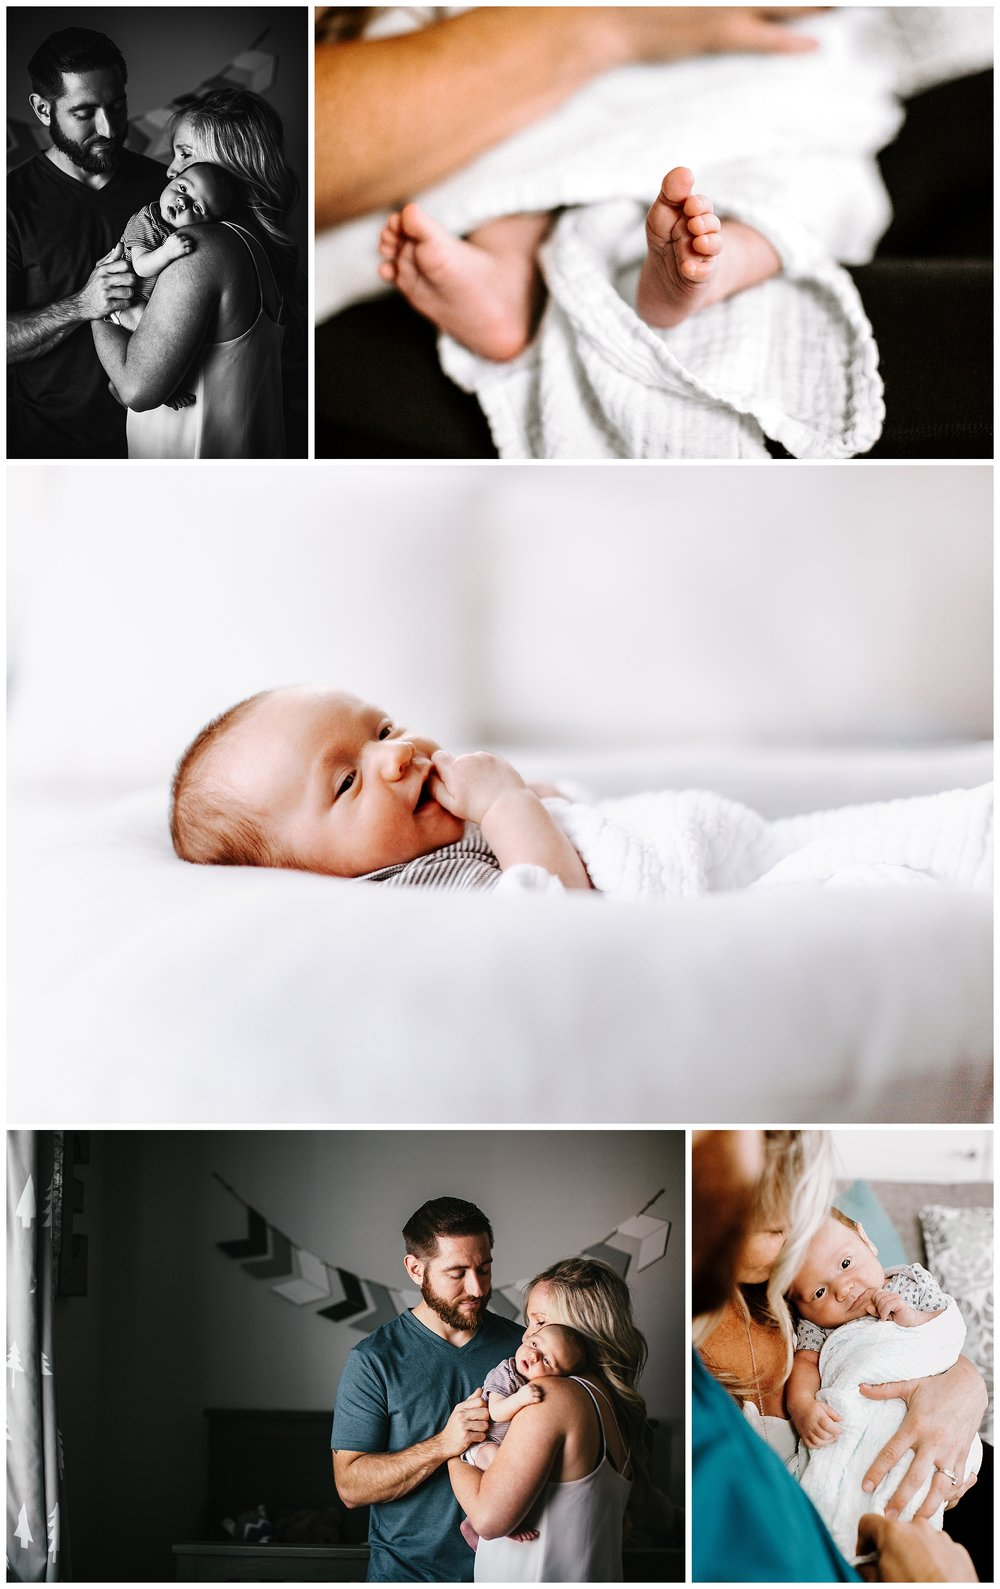 Newborn_Photography_Lifestyle_Spokane.jpg